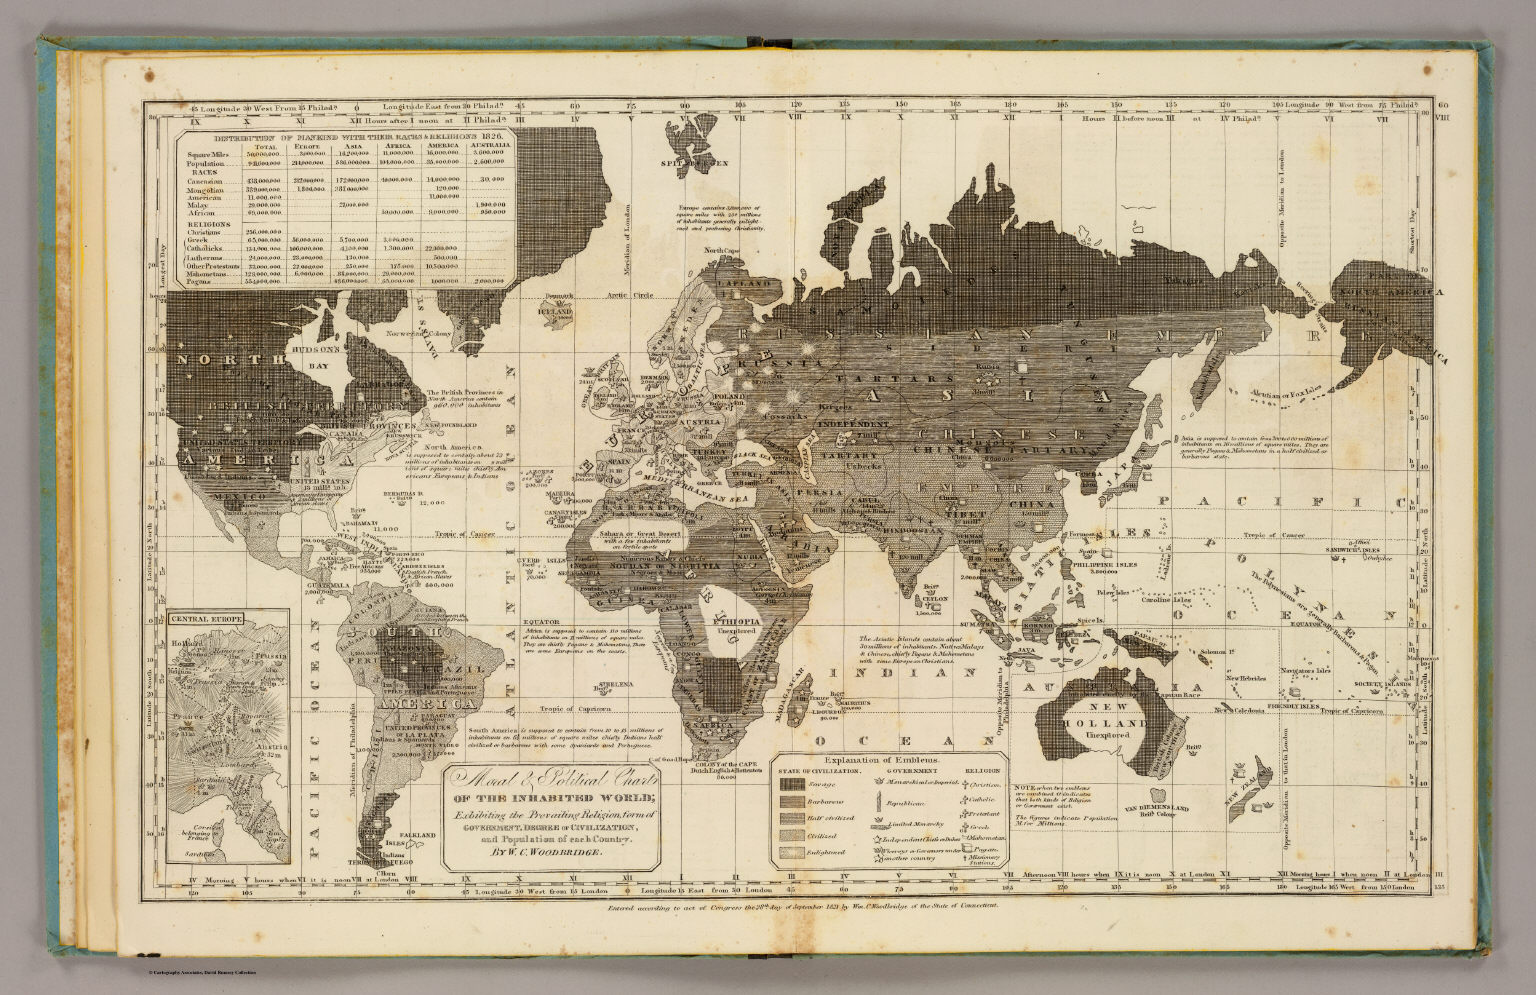 Moral, political World. - David Rumsey Historical Map Collection